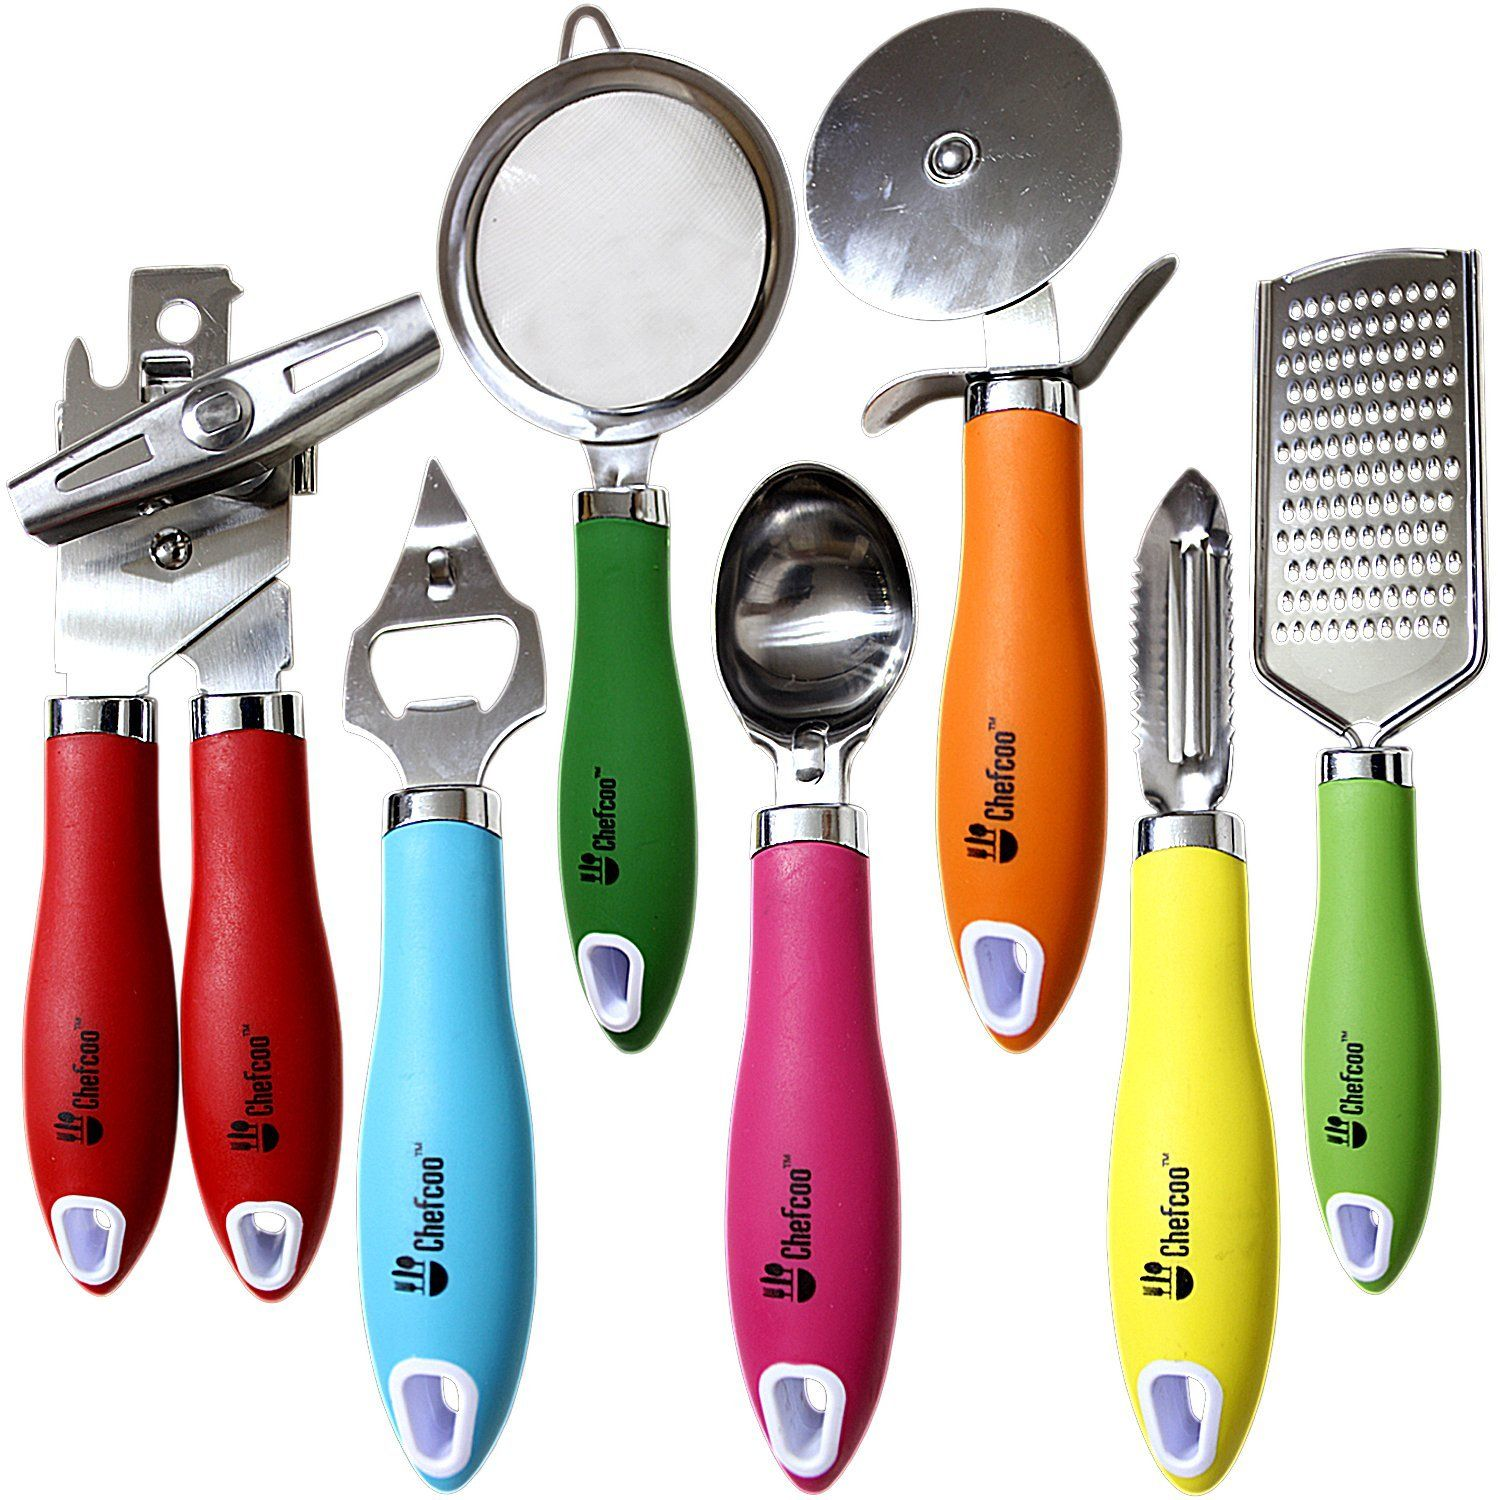 Amazon.com: Kitchen Gadgets Utensils Cooking Tools Set By